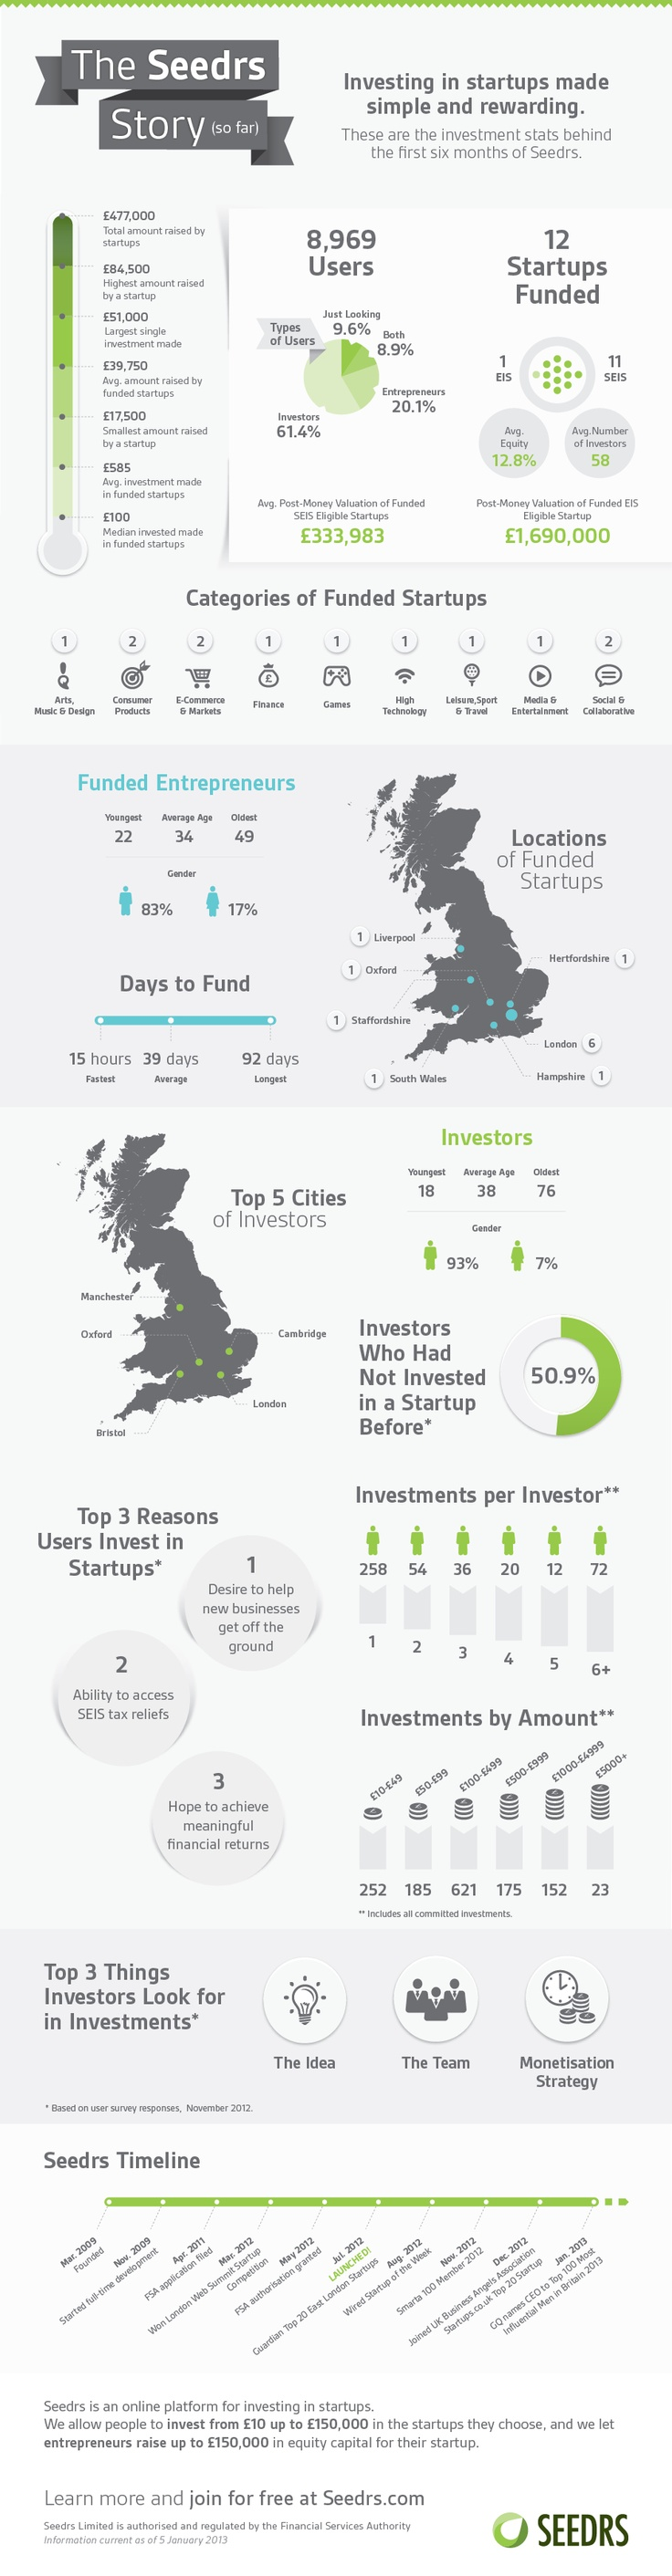 Exciting #infographic from @Seedrs Limited. Leader in the #crowdfunding space.